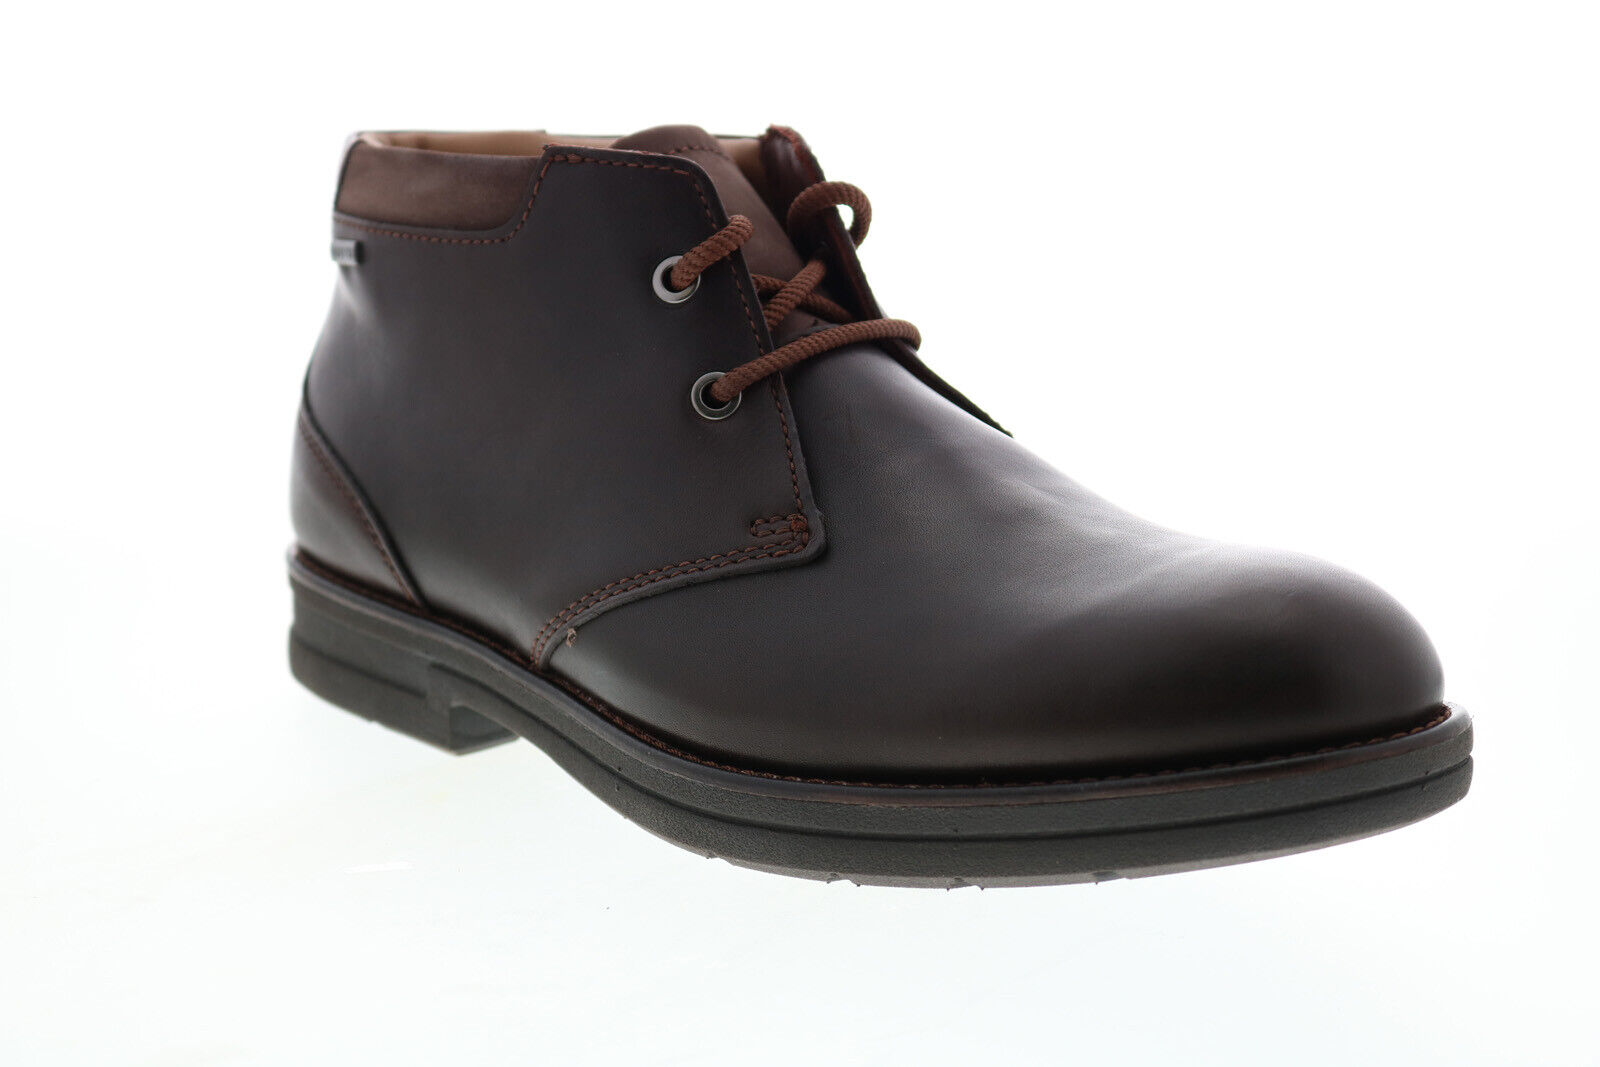 Clarks Banning Hi GTX 2615190 Mens Brown Leather Lace UP Chukkas Boots